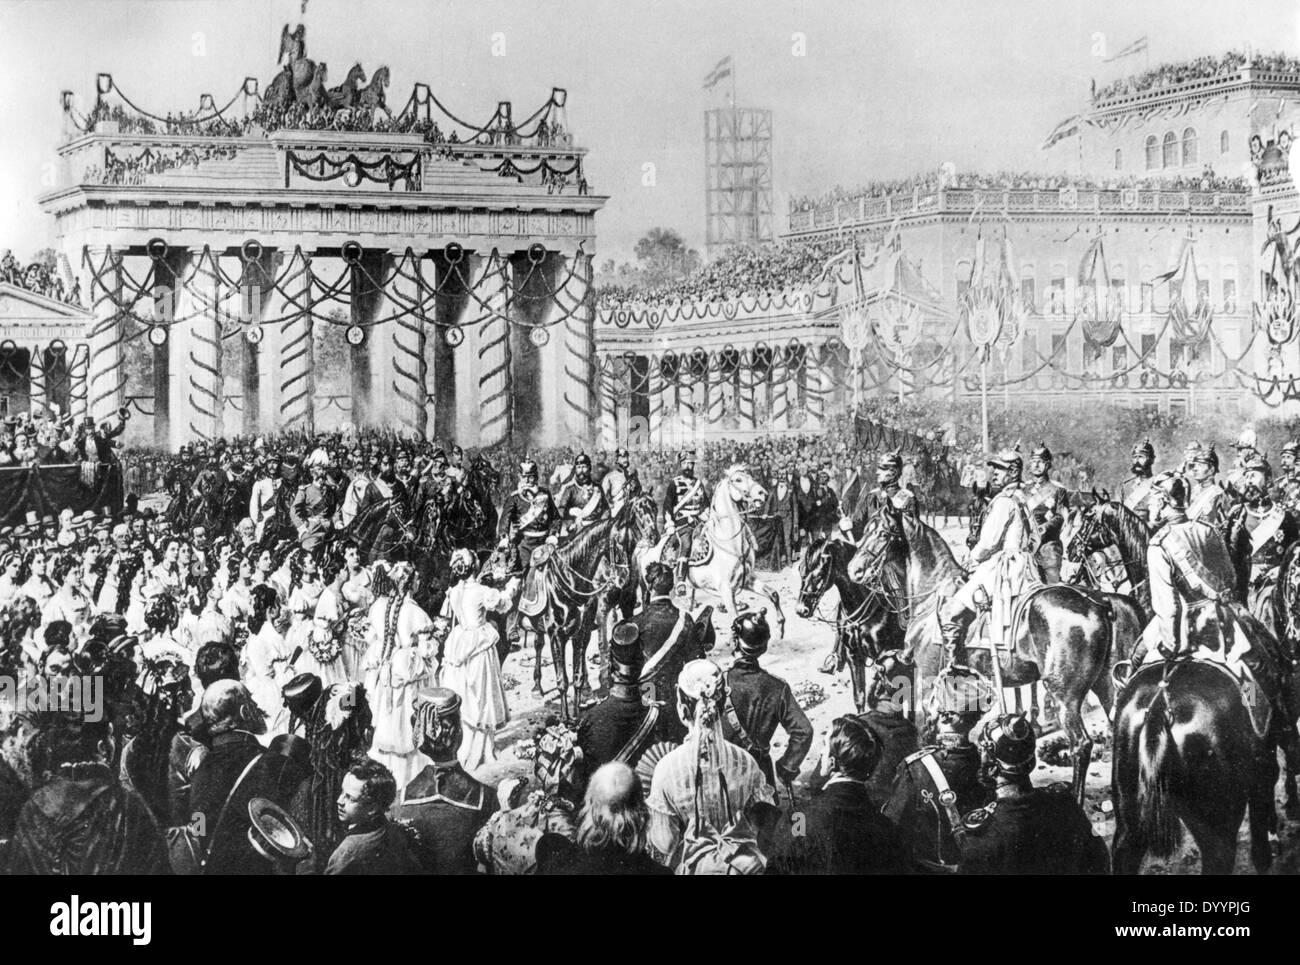 brandenburger tor nach franco preussischer krieg berlin 1871 stockfoto bild 68837288 alamy. Black Bedroom Furniture Sets. Home Design Ideas